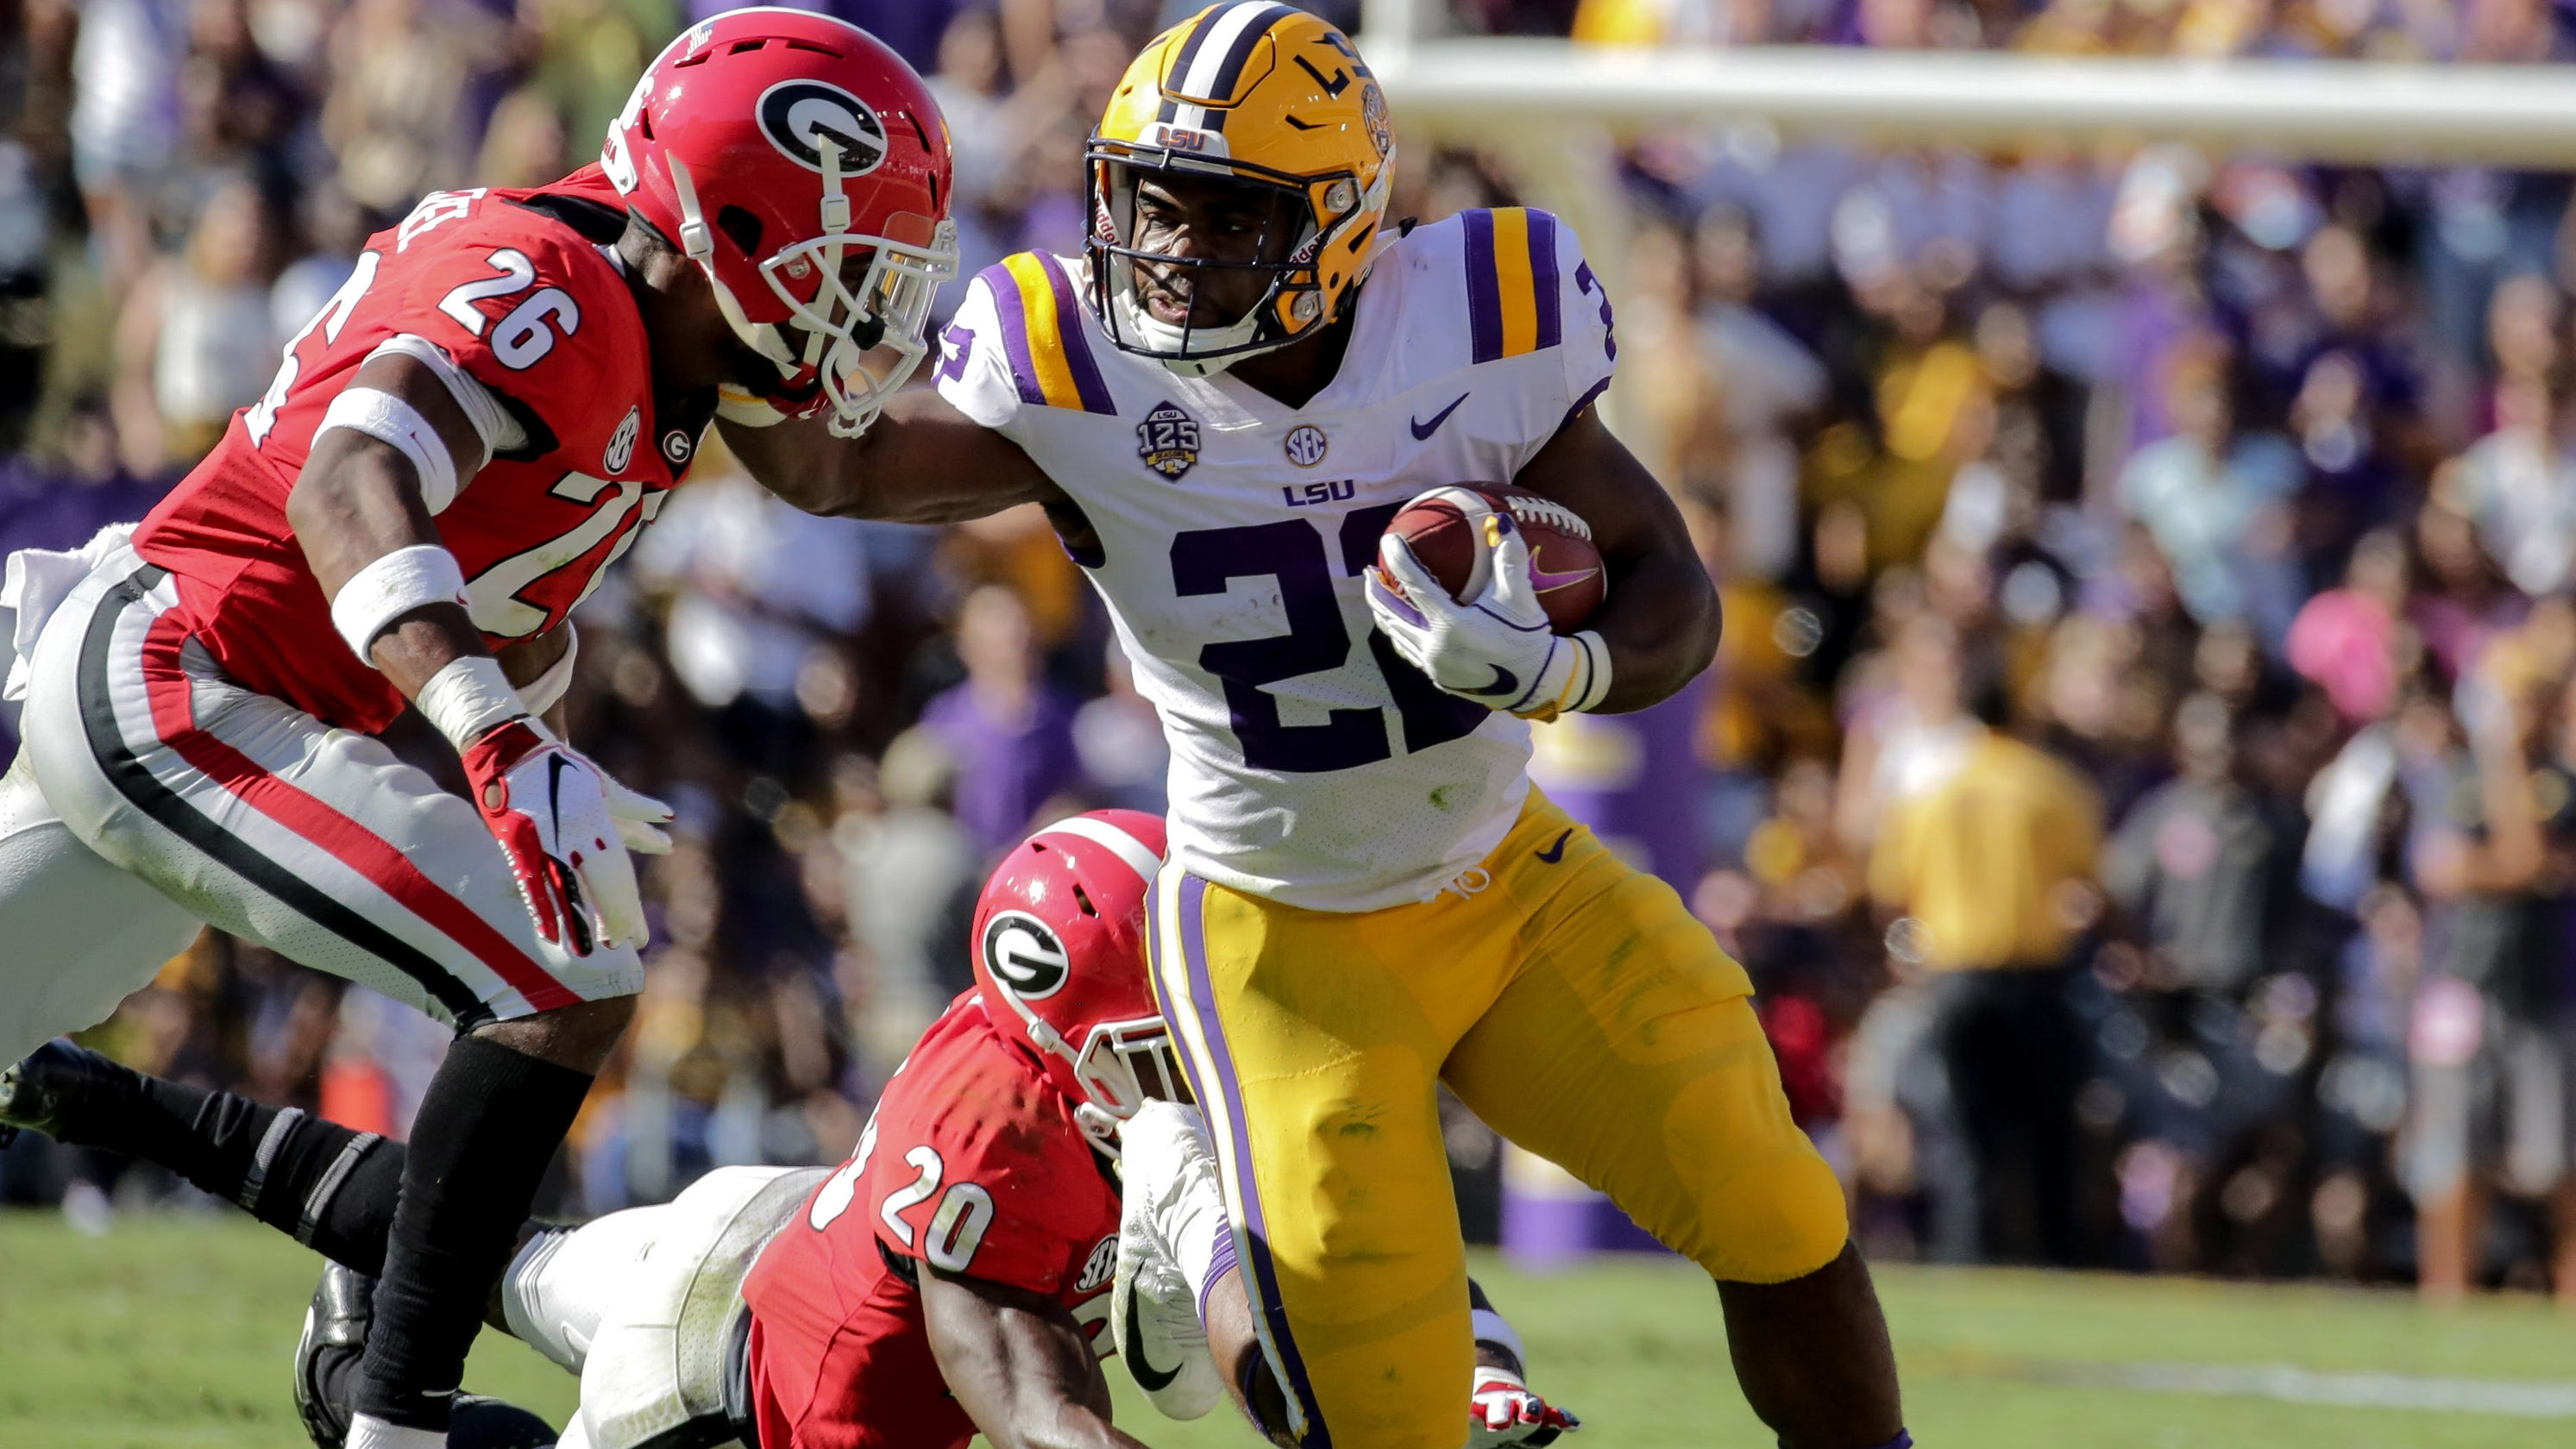 LSU pounds Georgia to prove it is in the College Football Playoff race d2d0e8956